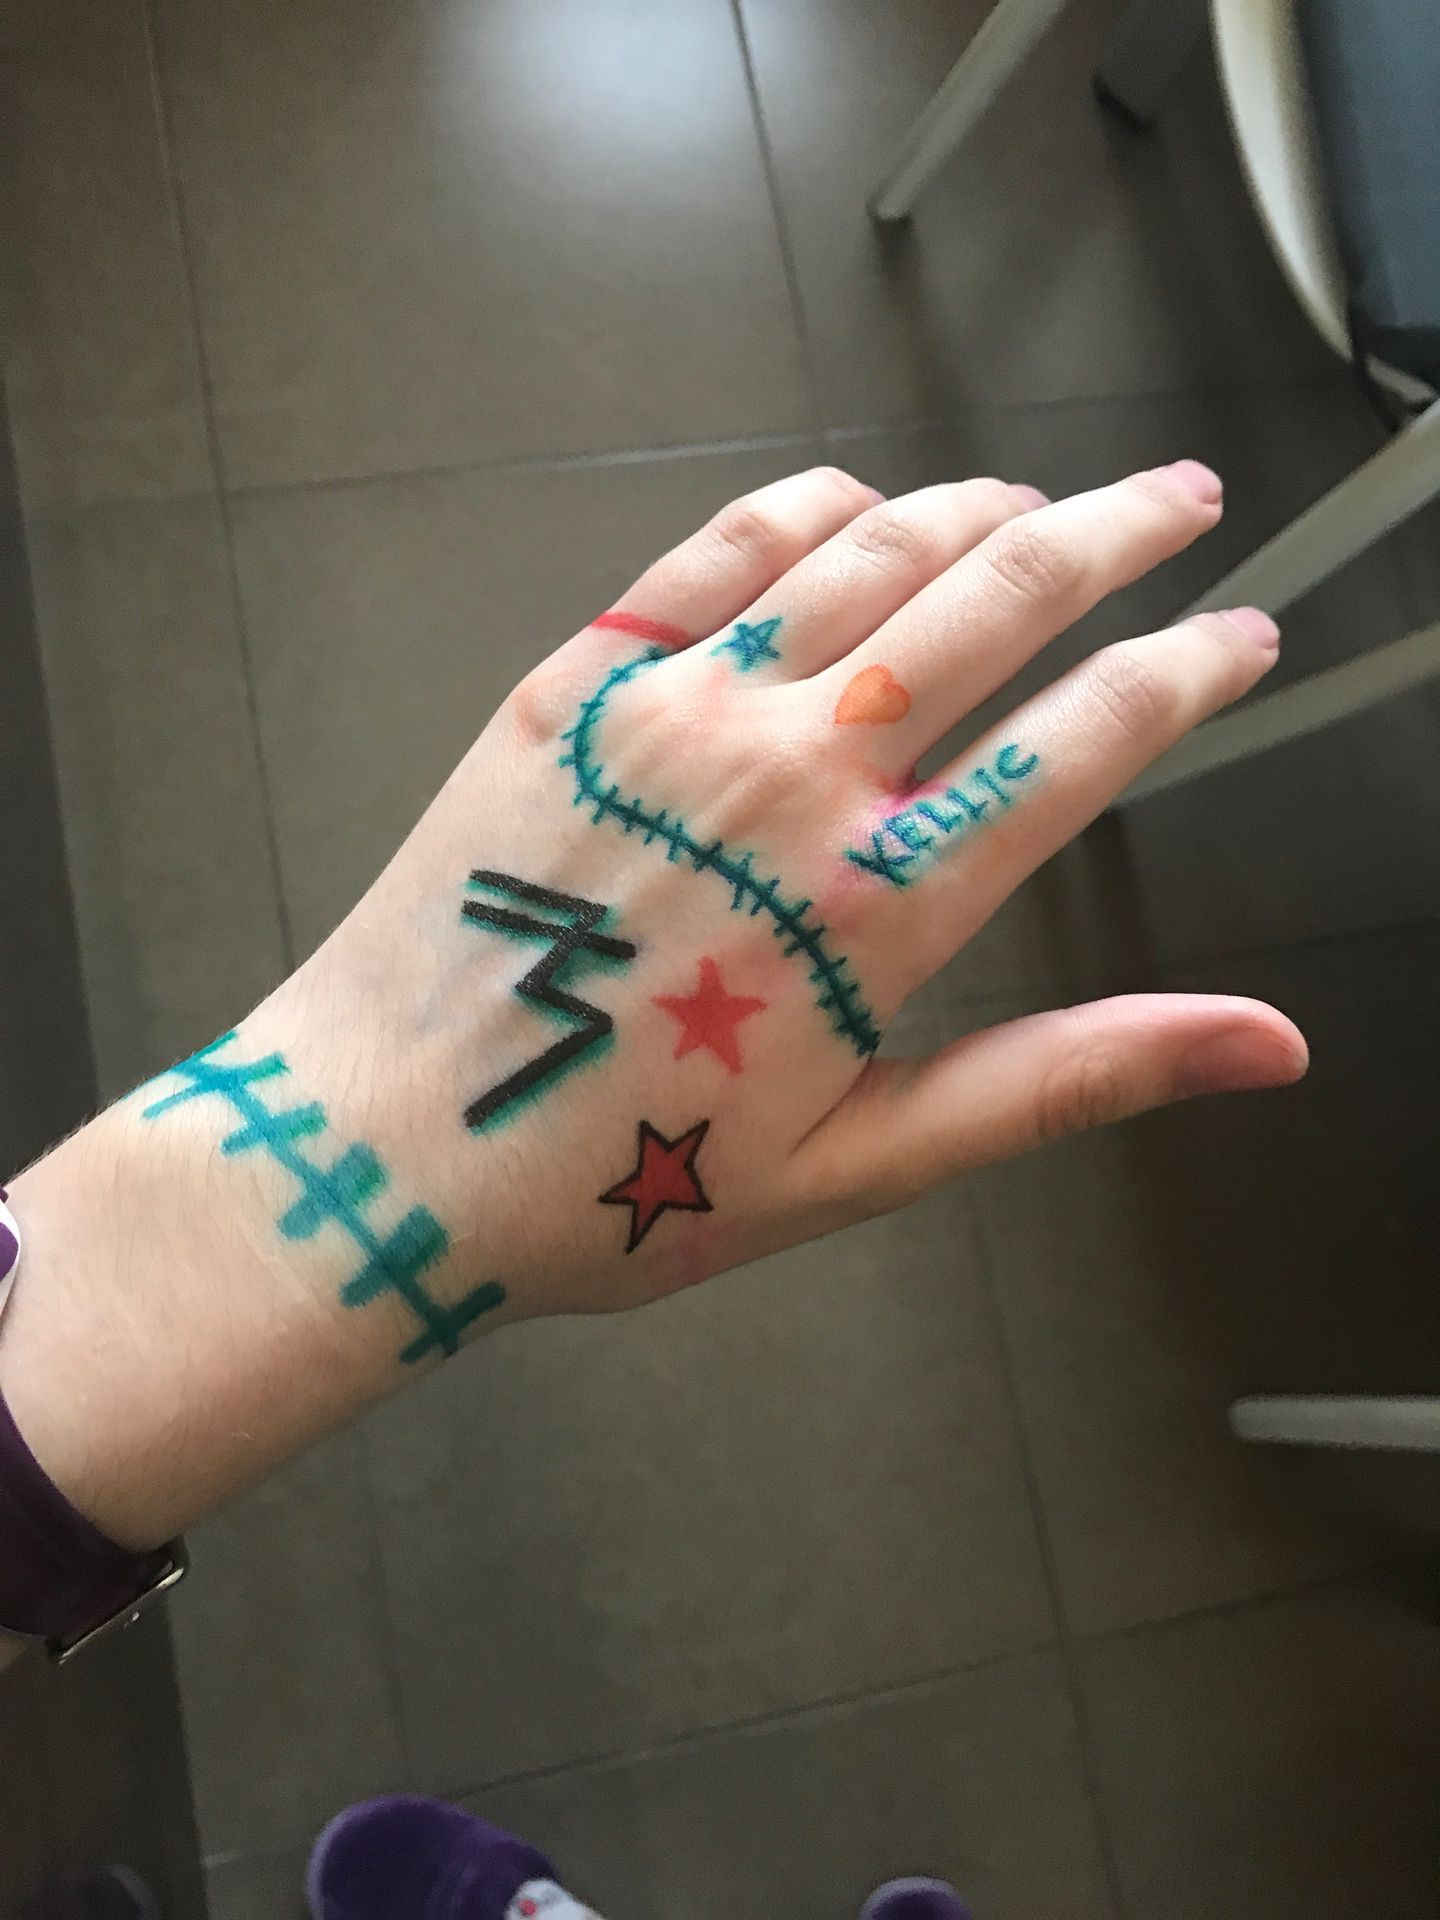 Oh yeah and I started drawing on my hand again yay!